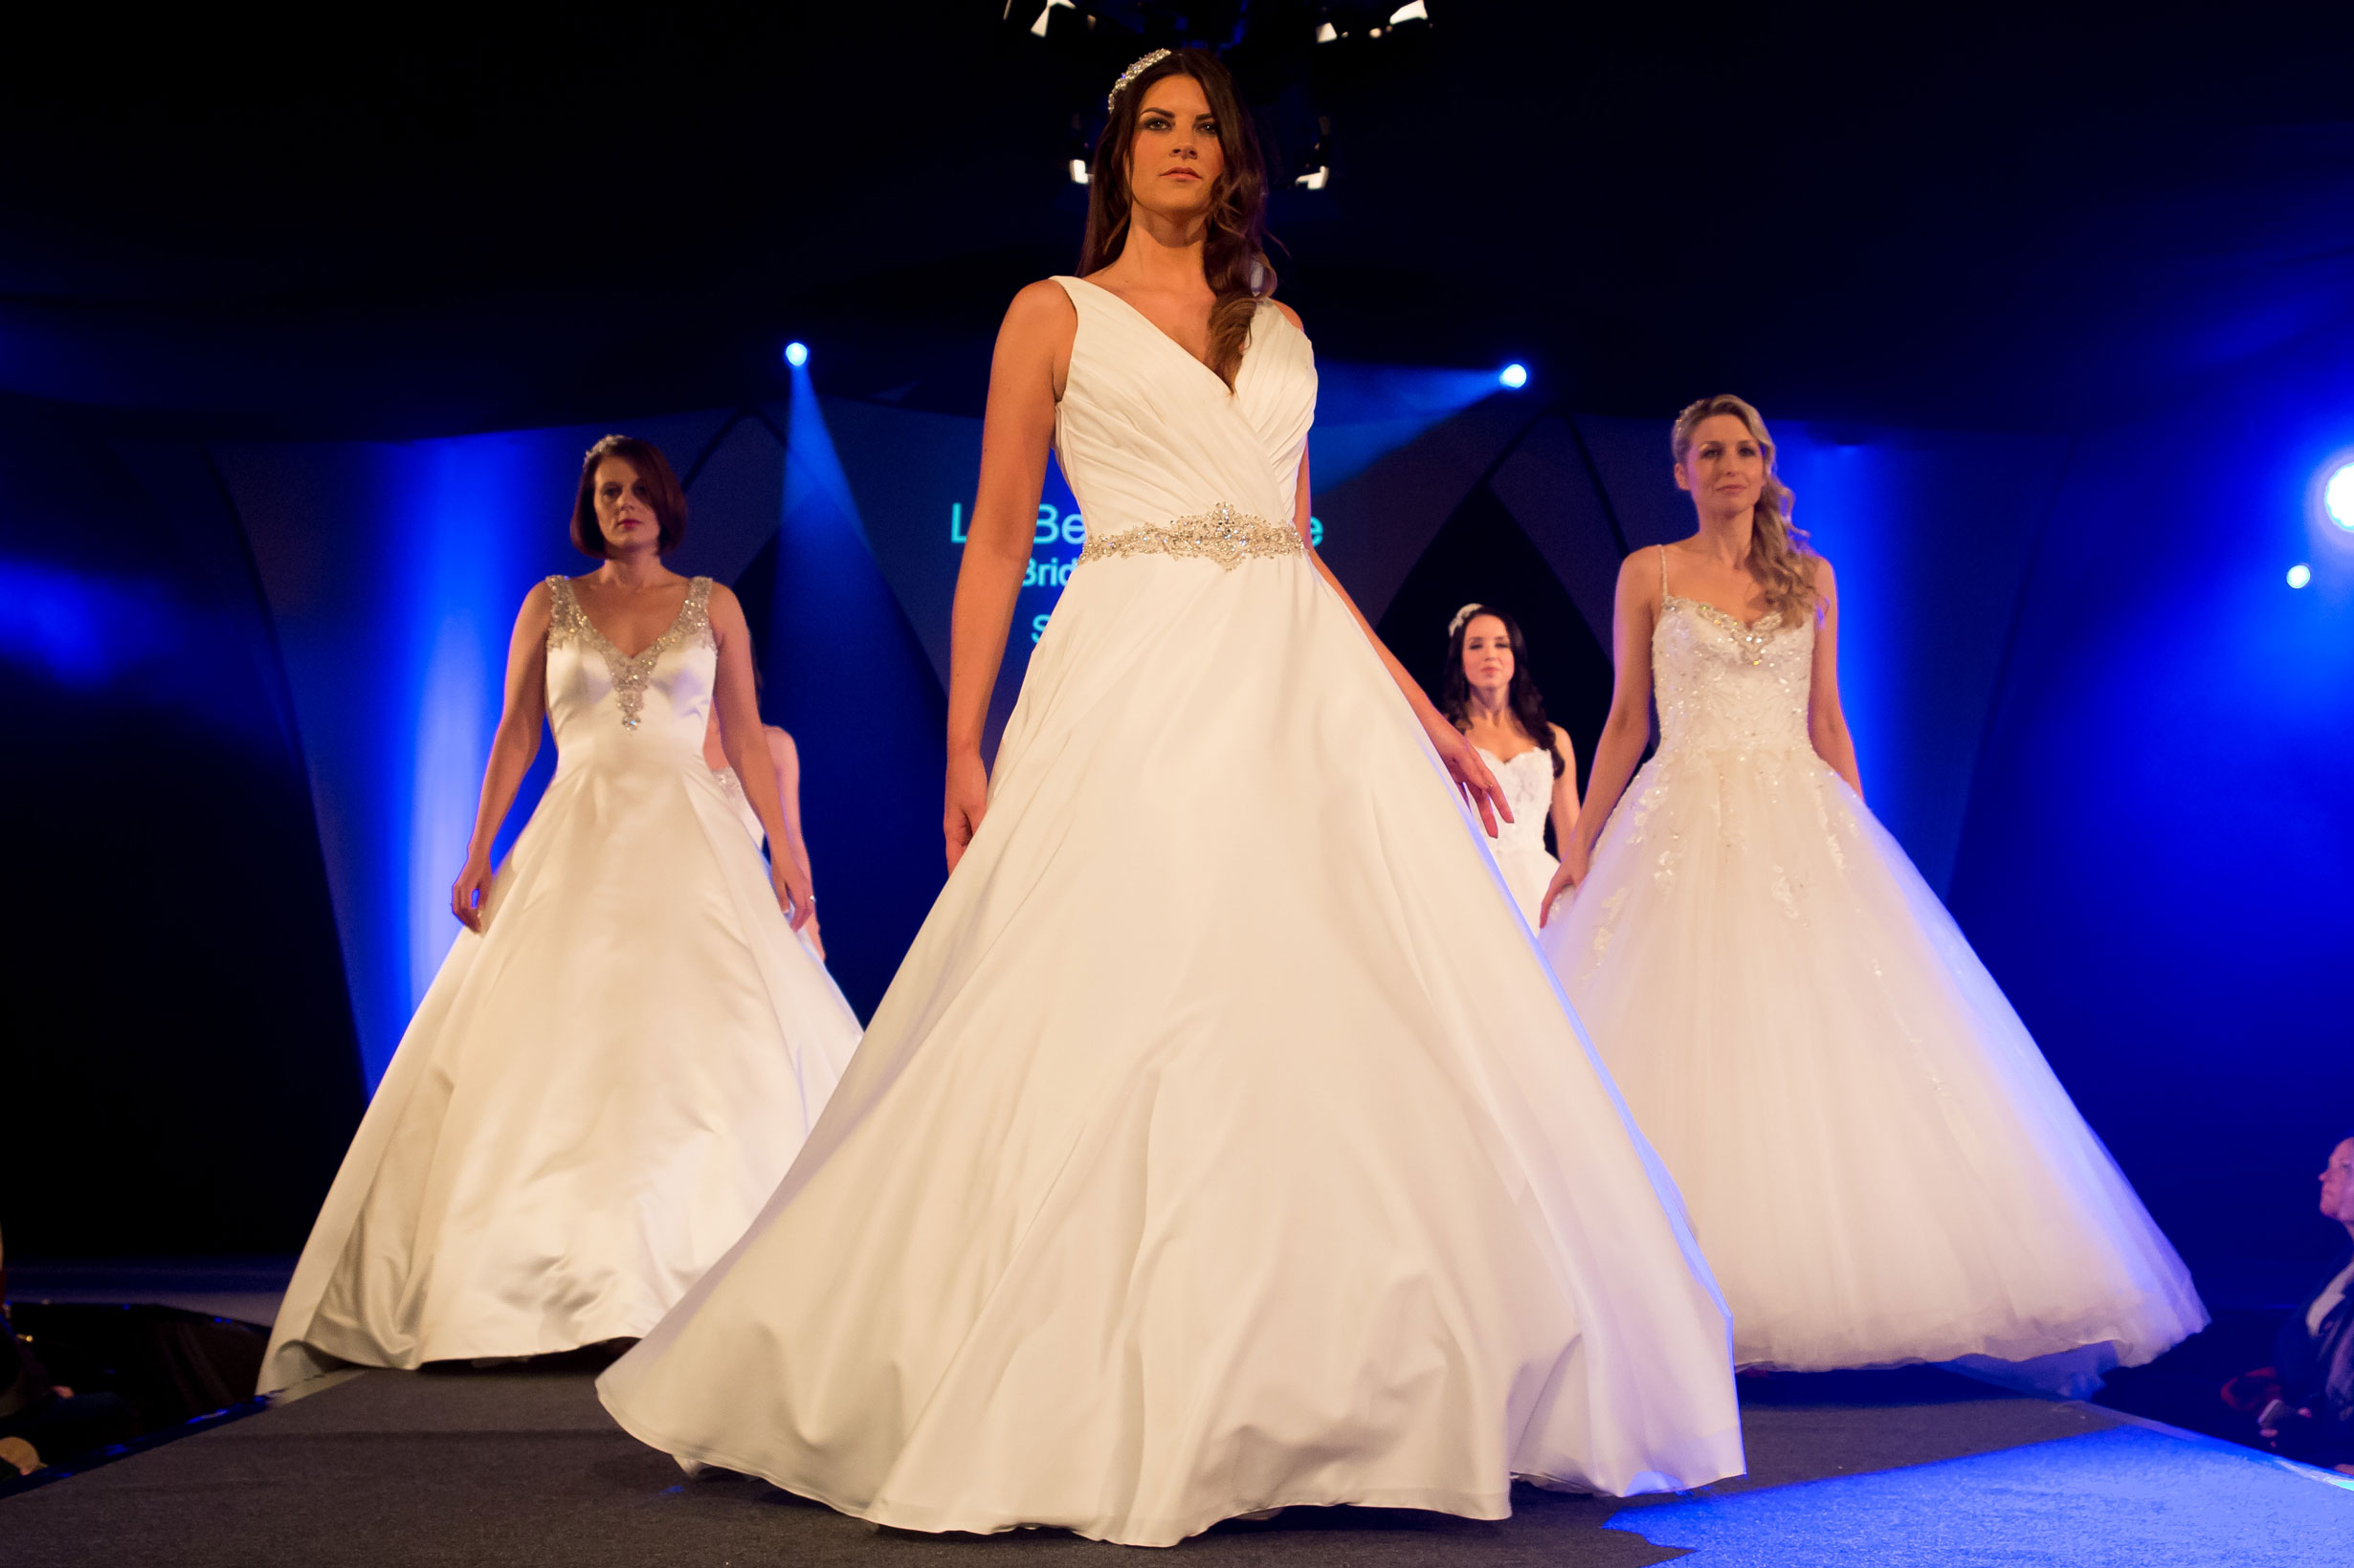 bride-the-wedding-show-norfolk-2016-3